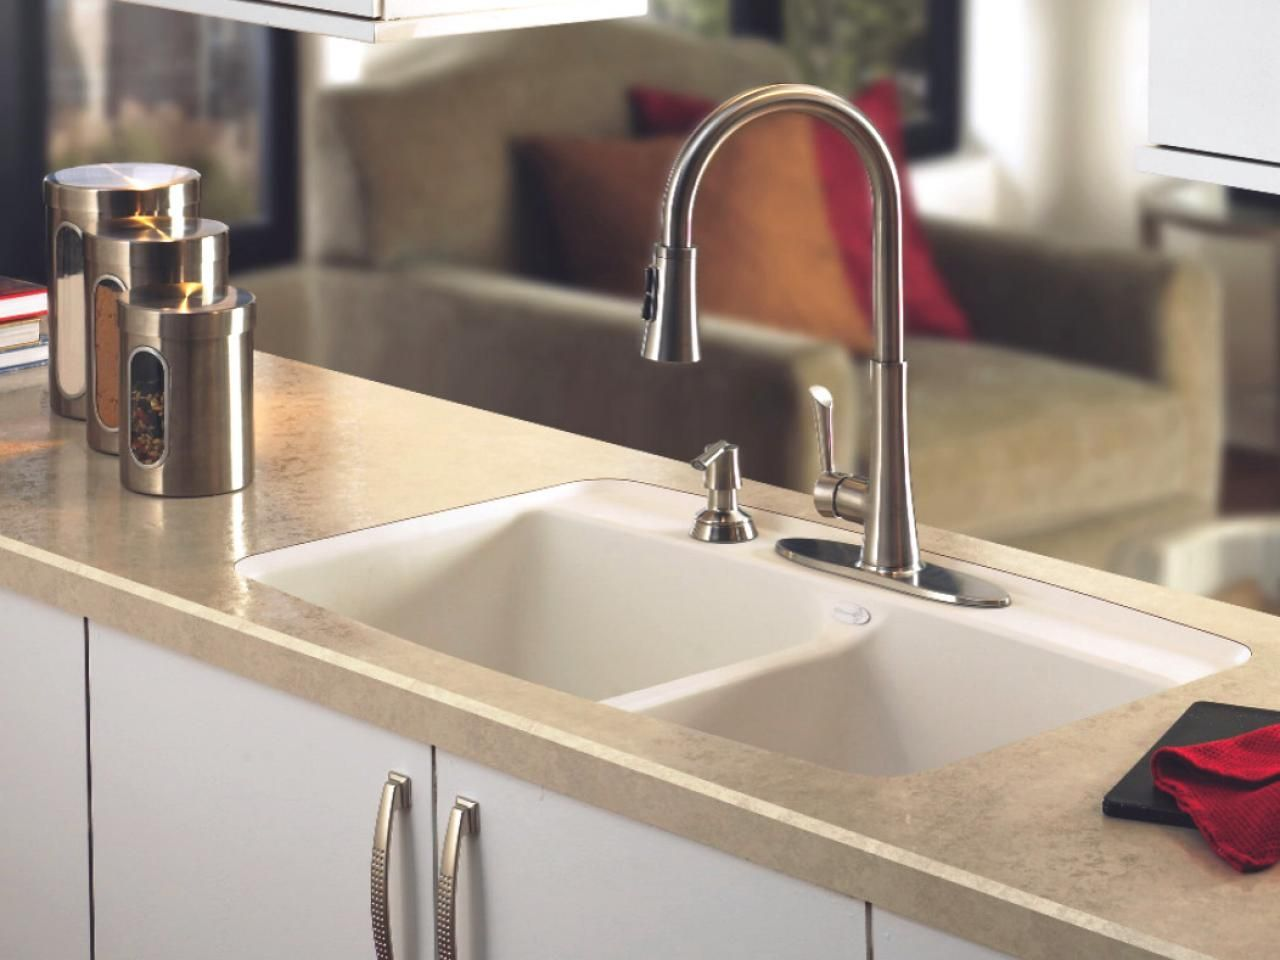 Explore info on laminate bathroom countertops and get ready to install an economical and easy to maintain countertop in your bath space